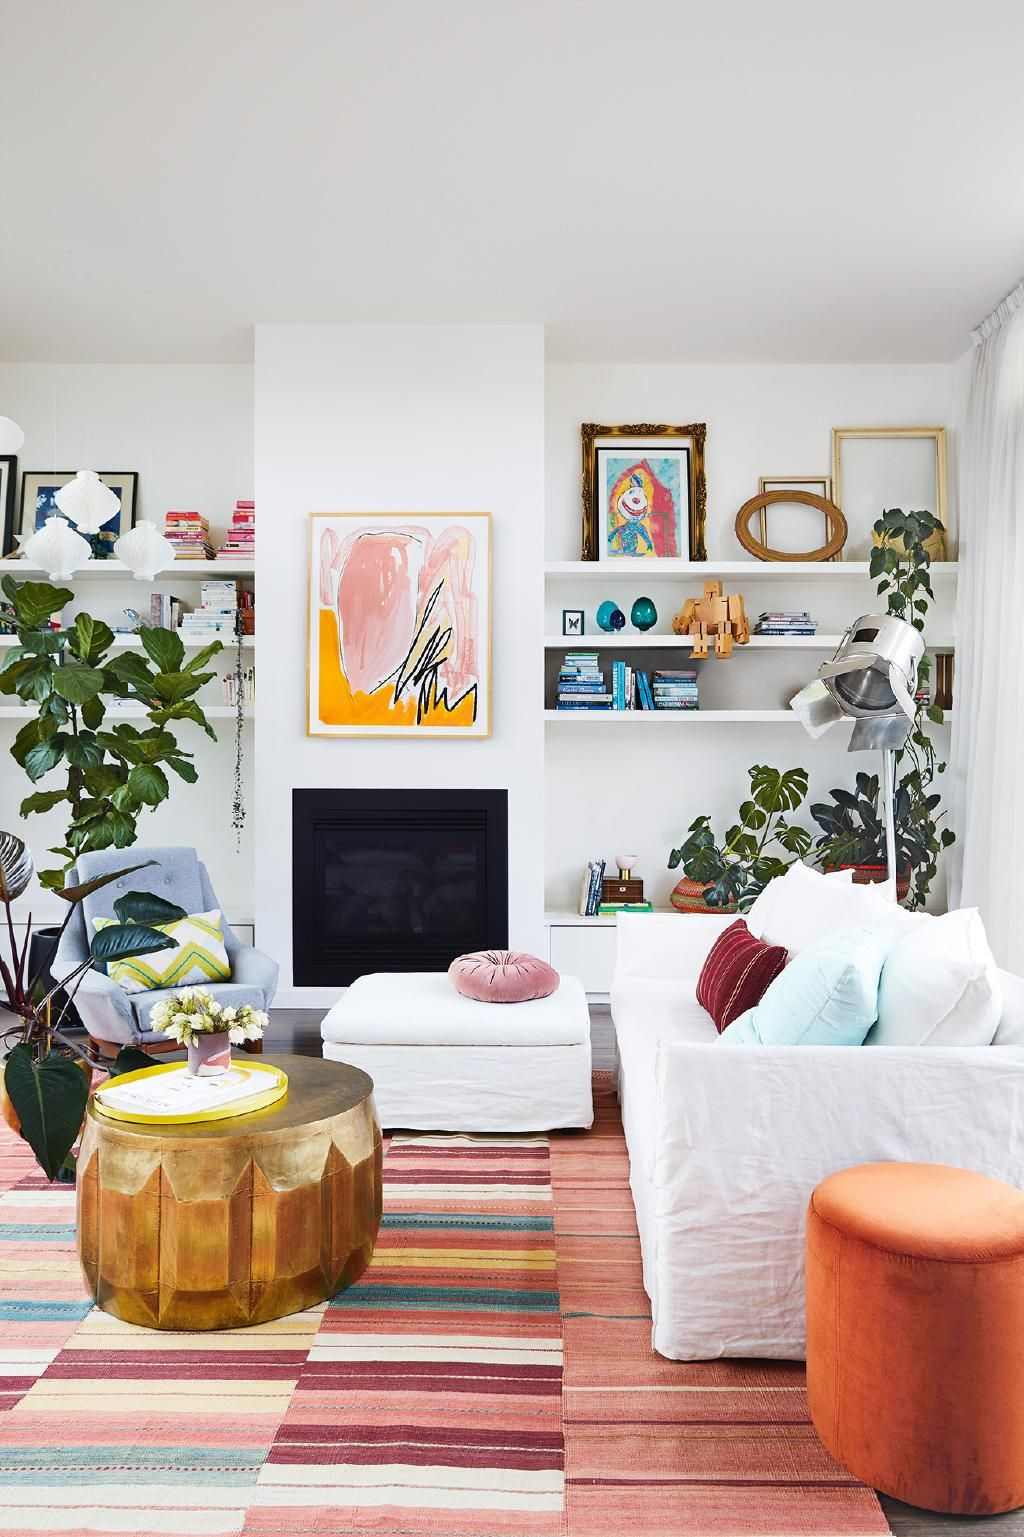 Plenty of colour and playful choices come together in this